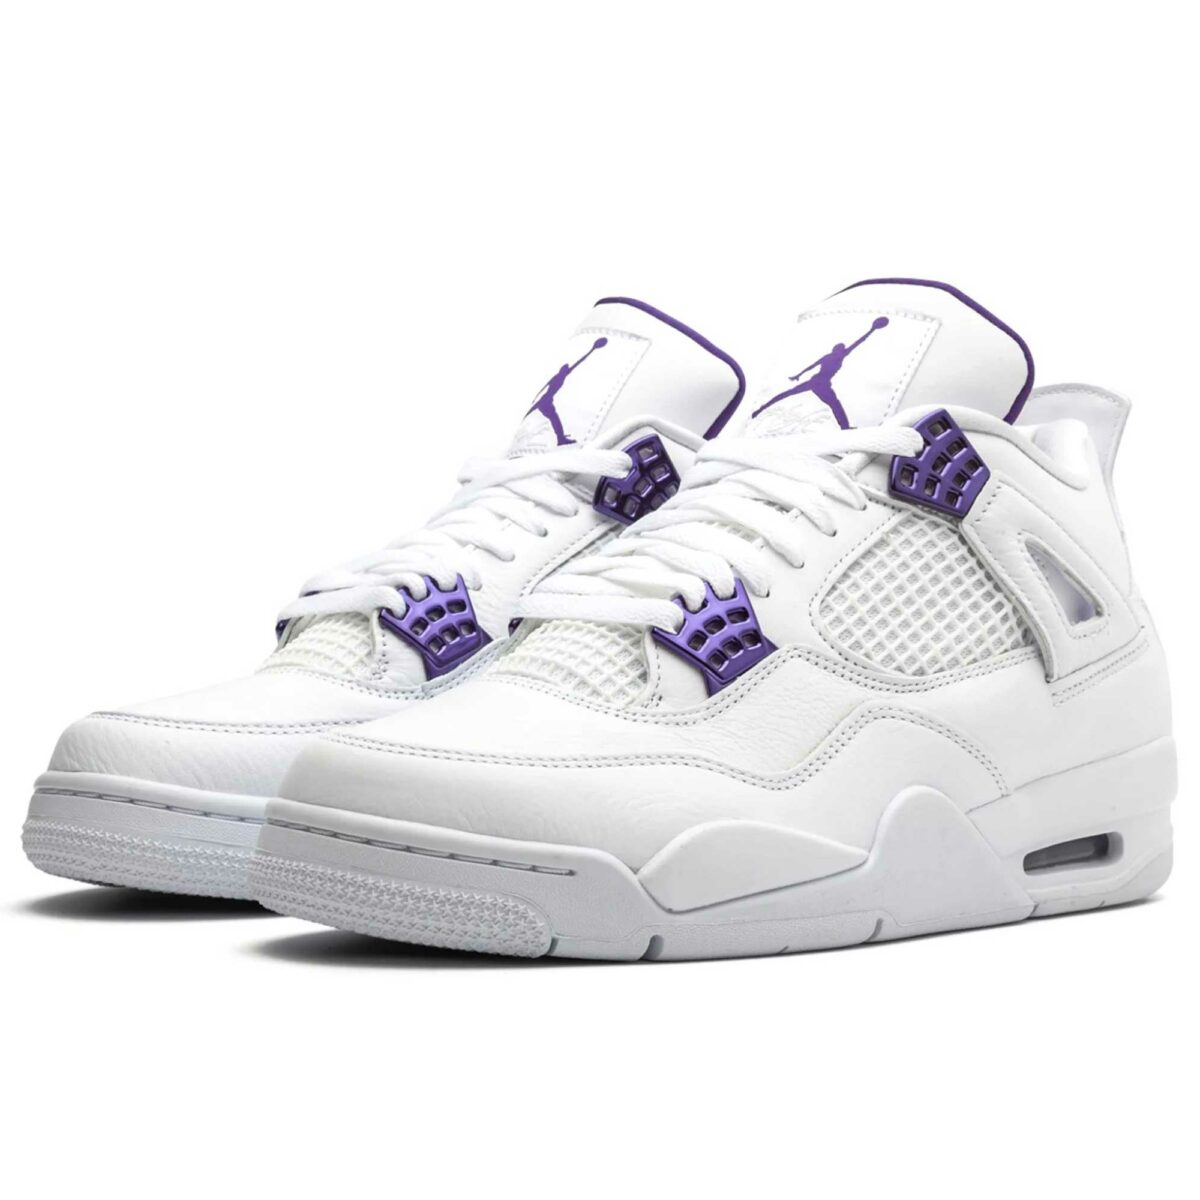 nike air Jordan 4 retro metallic pack purple CT8527_115 купить